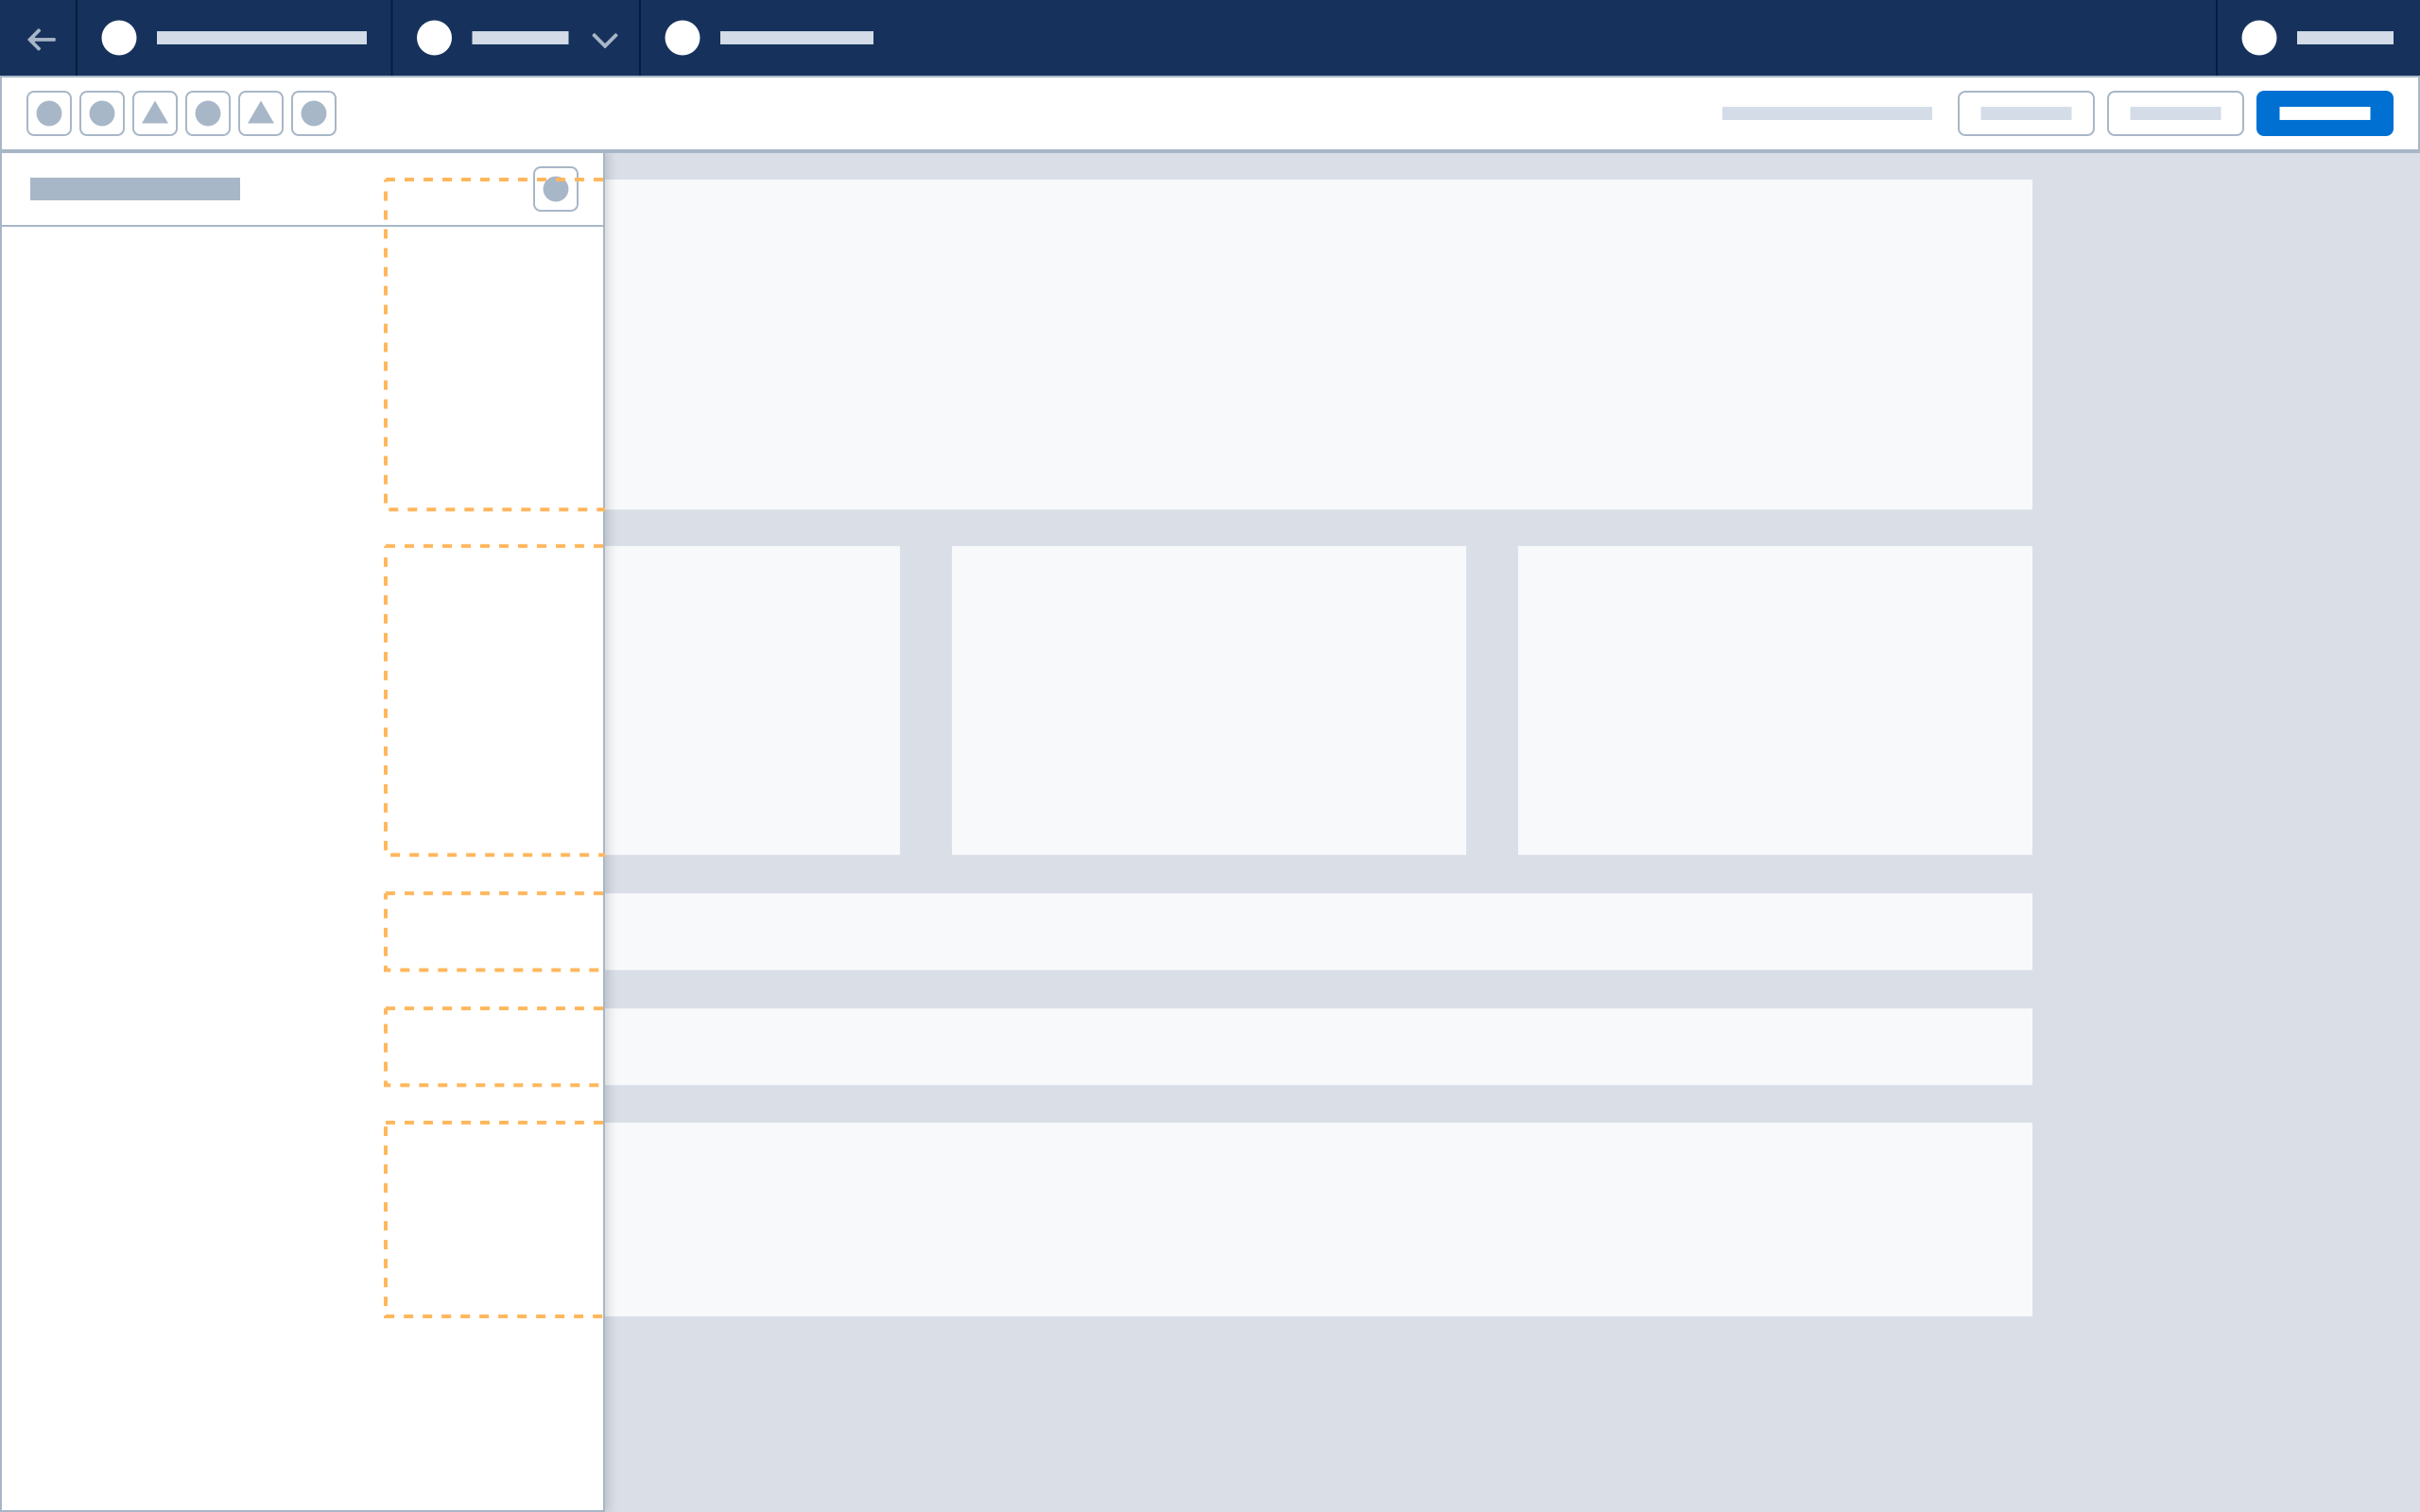 A wireframe showing panel overlay behavior.